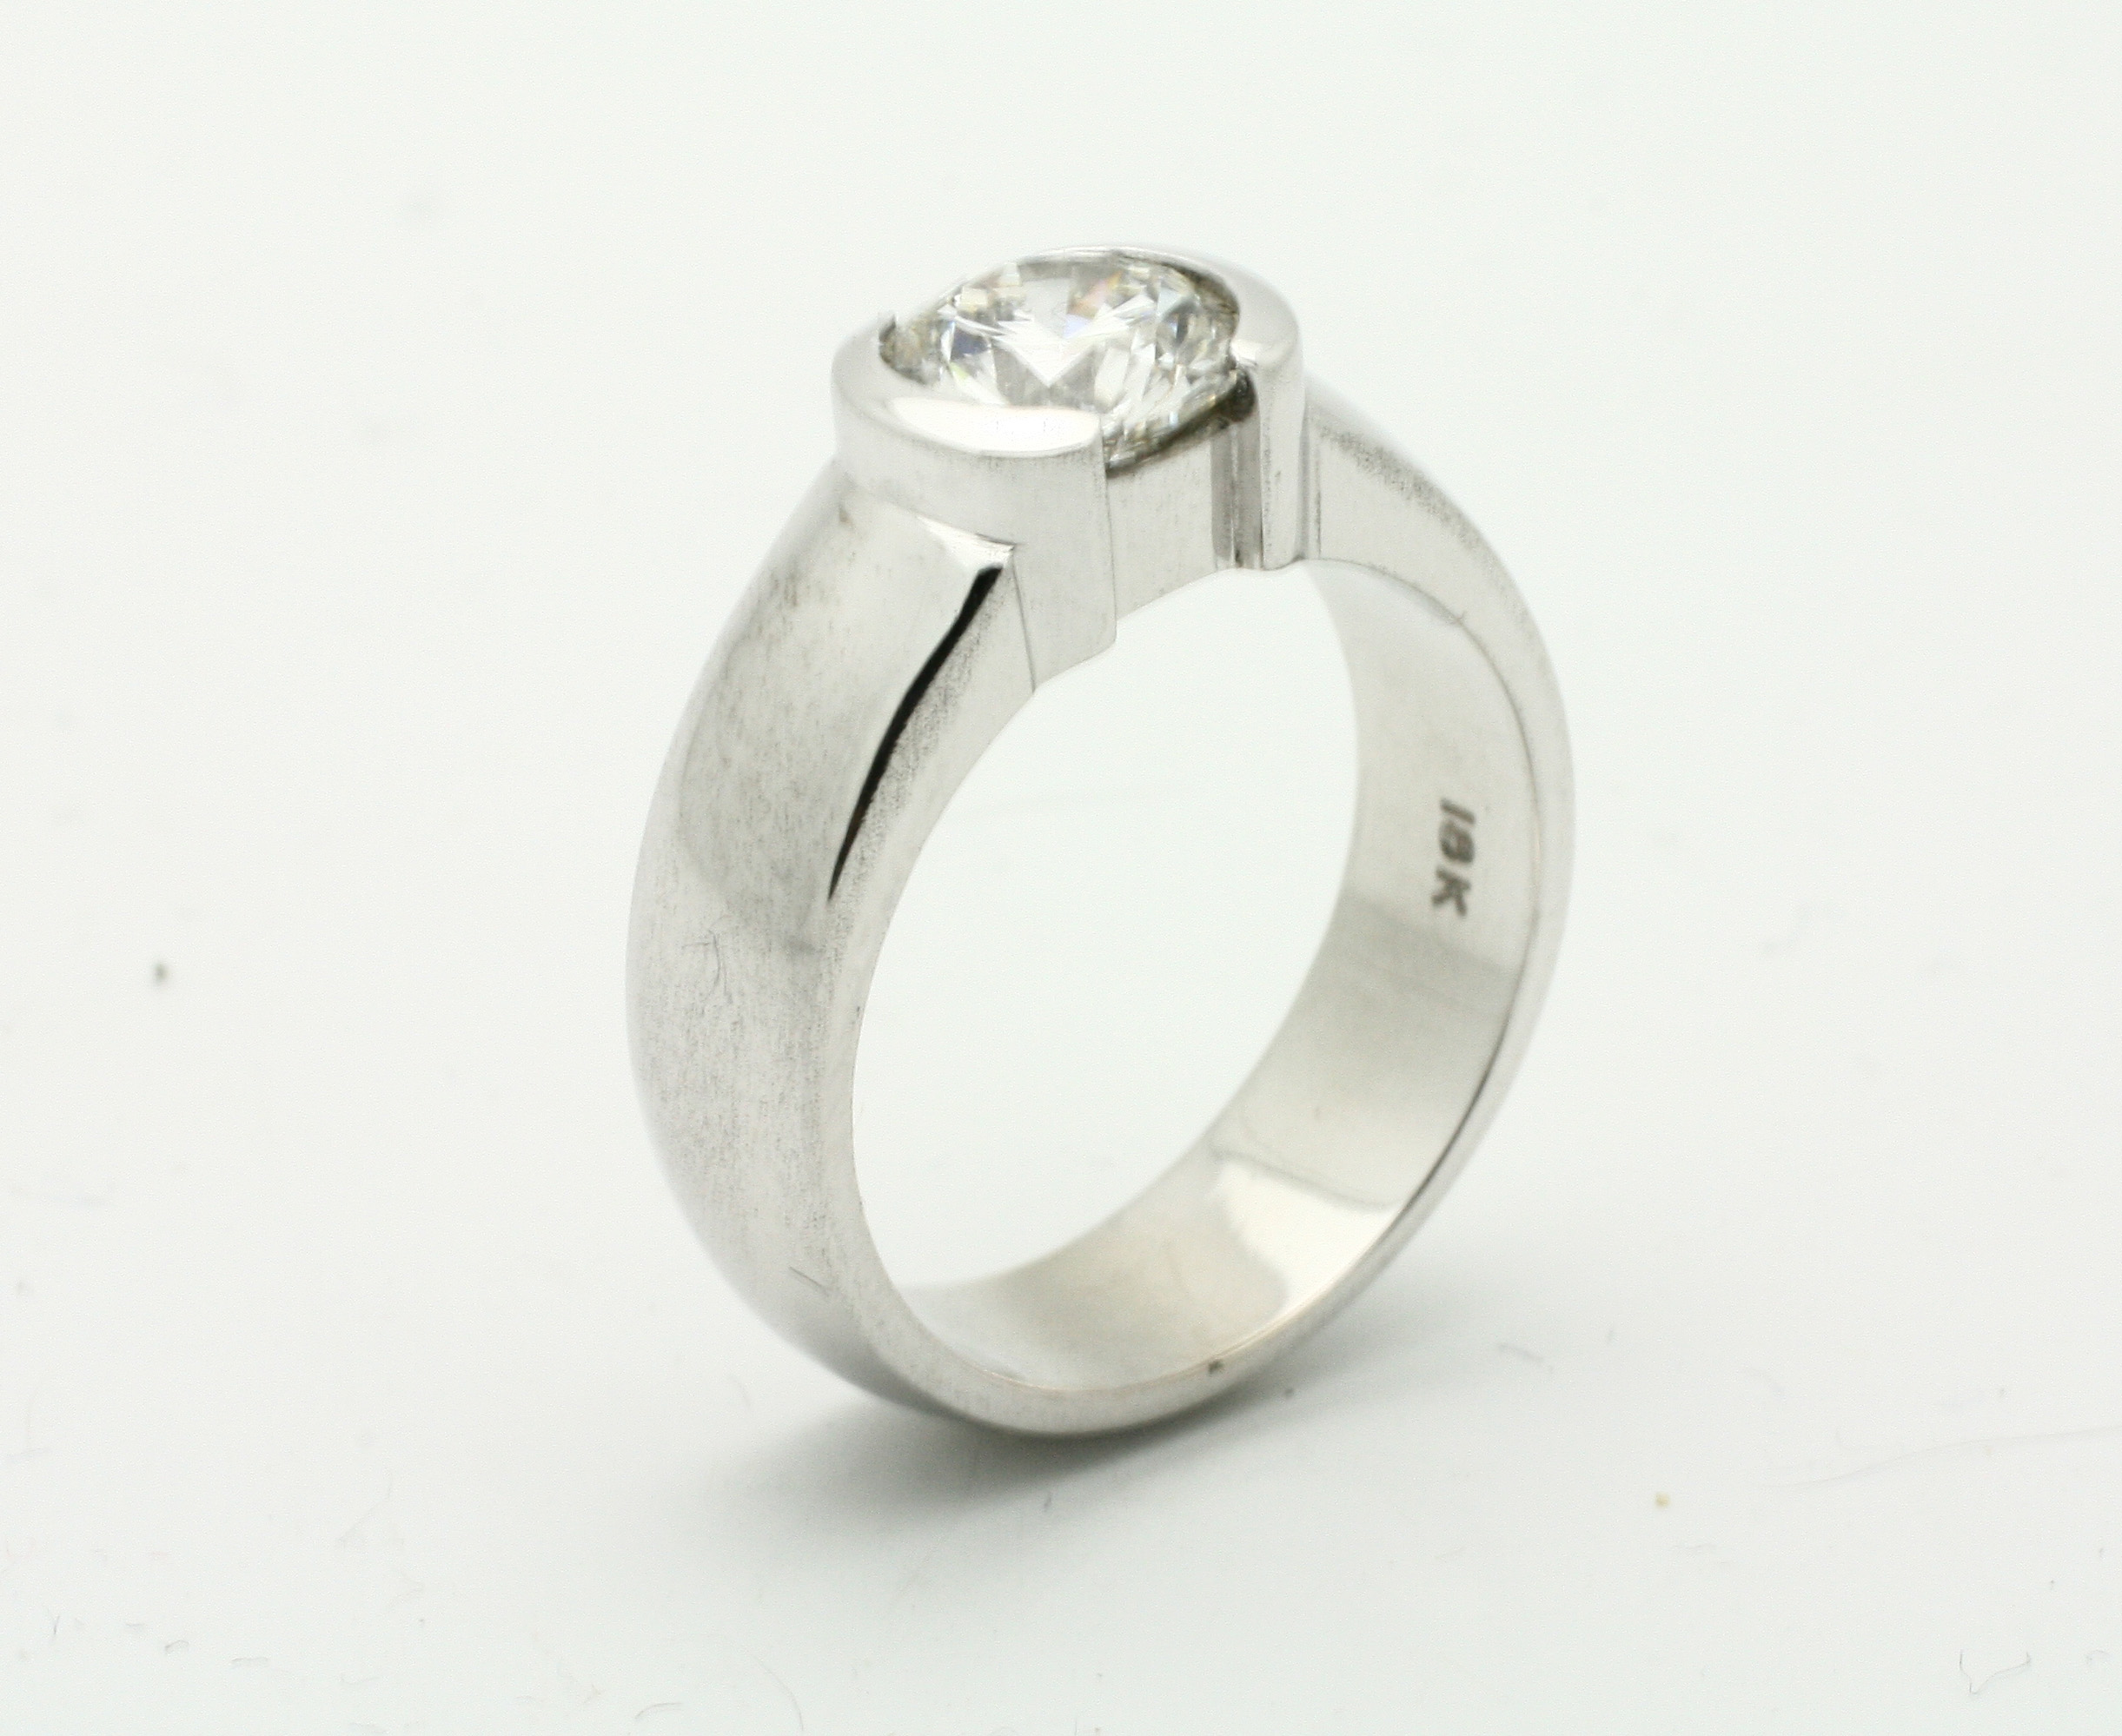 0.85ct round brilliant cut diamond center stone set in a 14kt white gold mount.  Starting at $5600 for this stone size andSI-1 clarity H colour  Can be customizable with any stone, size, metal etc.